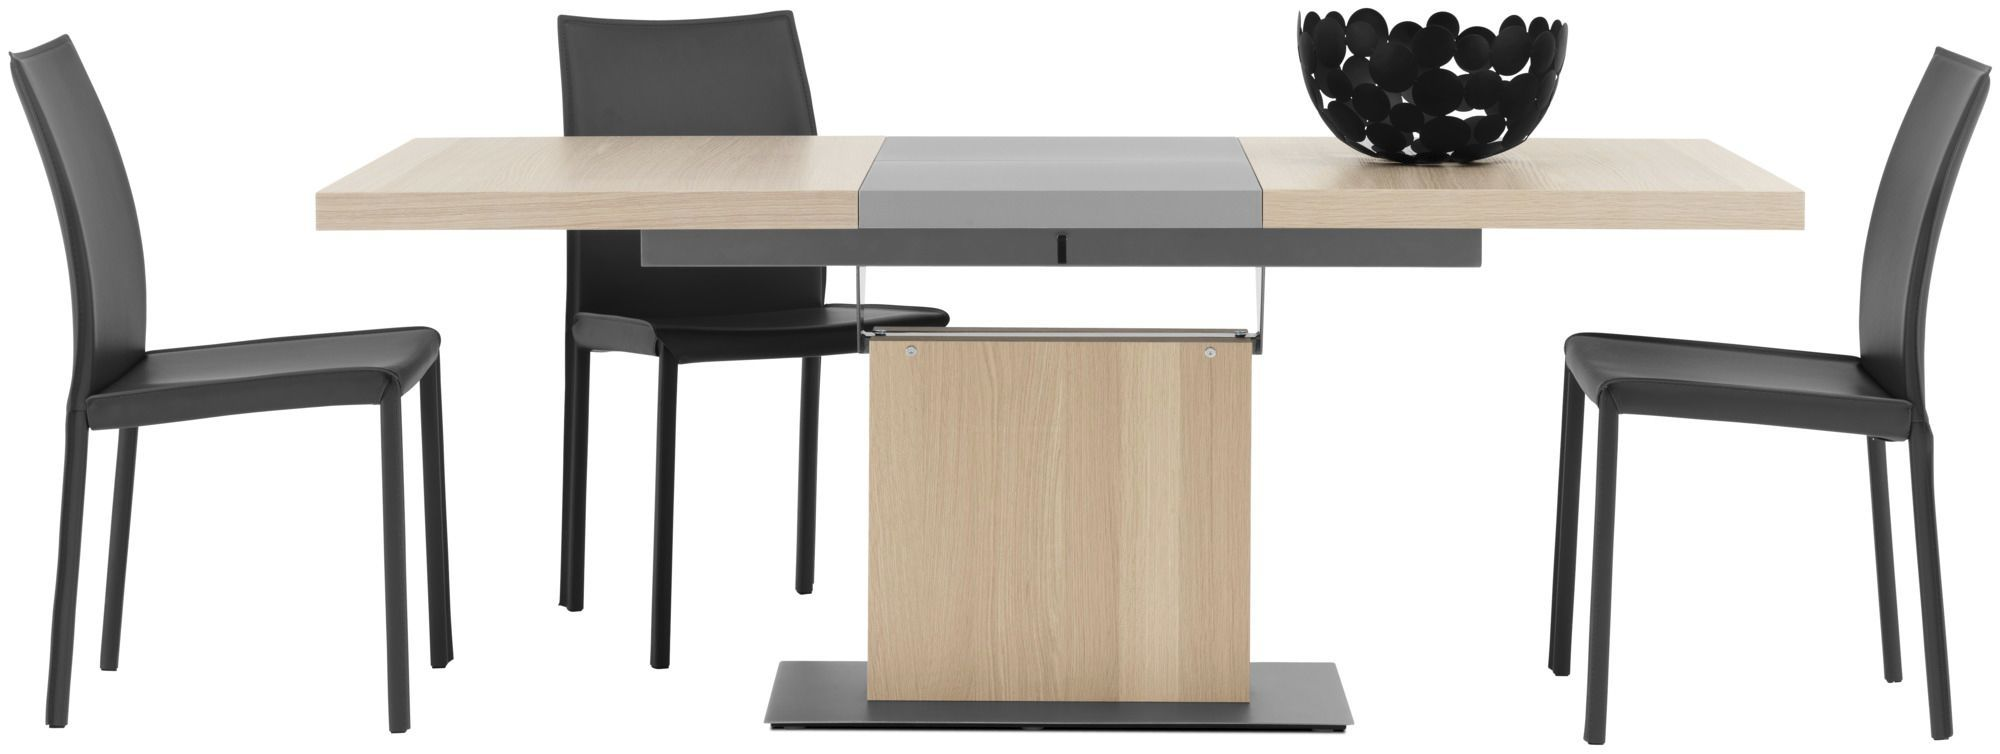 ... Contemporary dining table / MDF / steel / rectangular BARI BoConcept ...